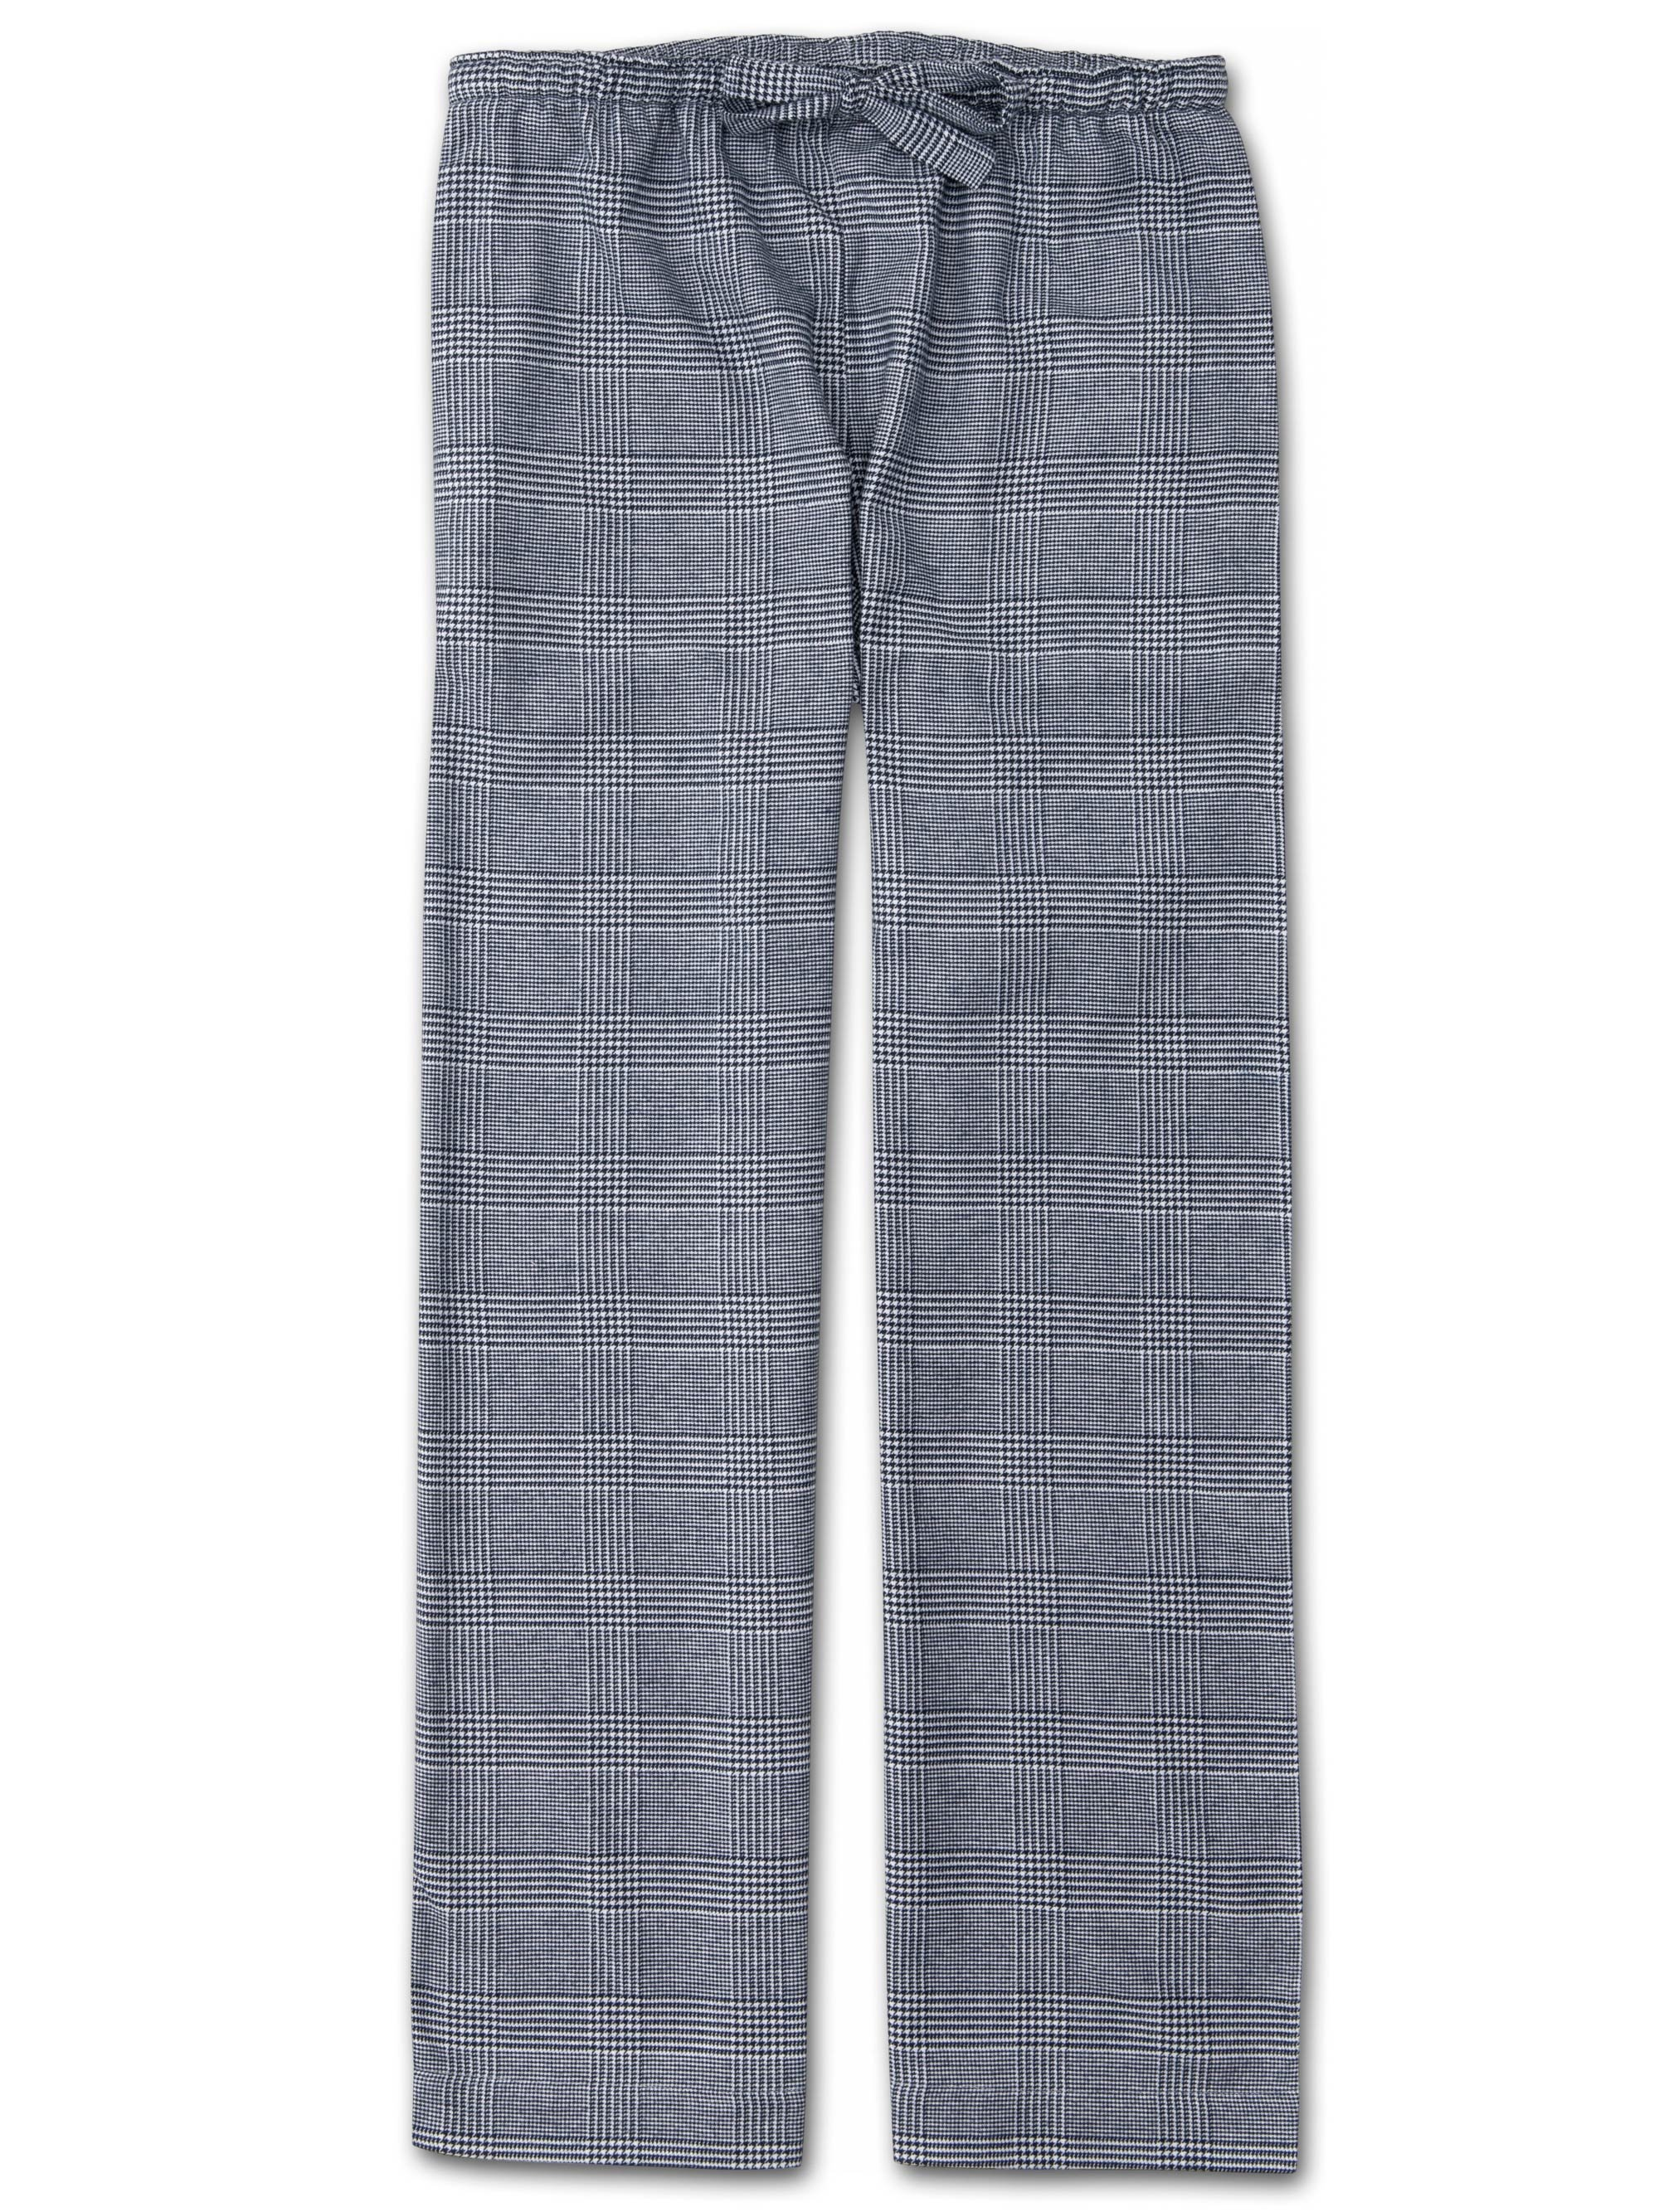 Women's Lounge Trousers Kelburn 10 Brushed Cotton Check Navy